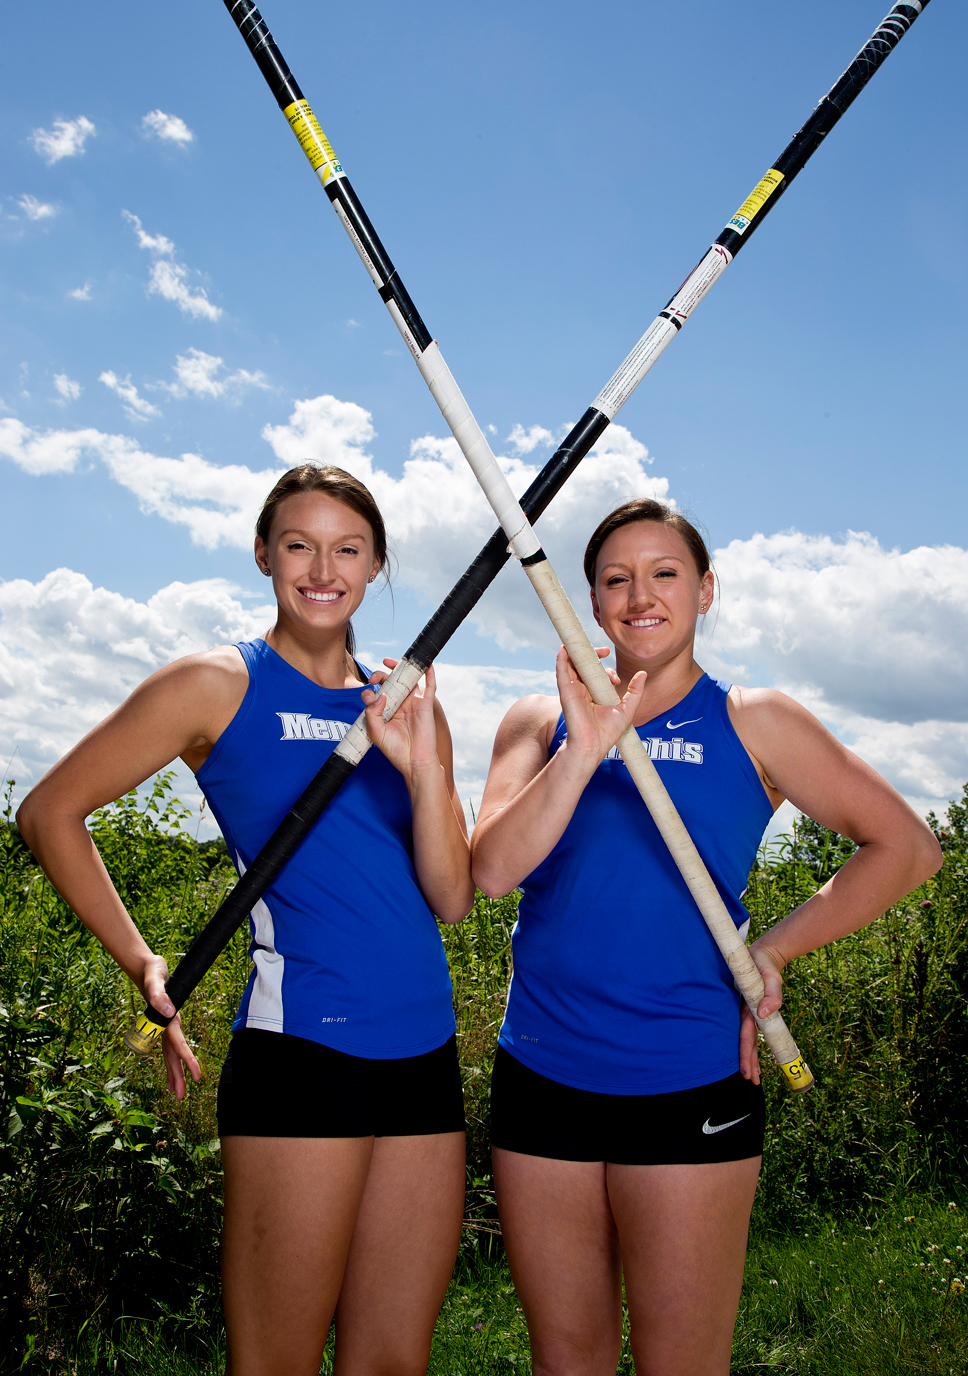 Carolina and Ofelia Carmichael are track teammates at the University of Memphis. Photo by Joel Lerner